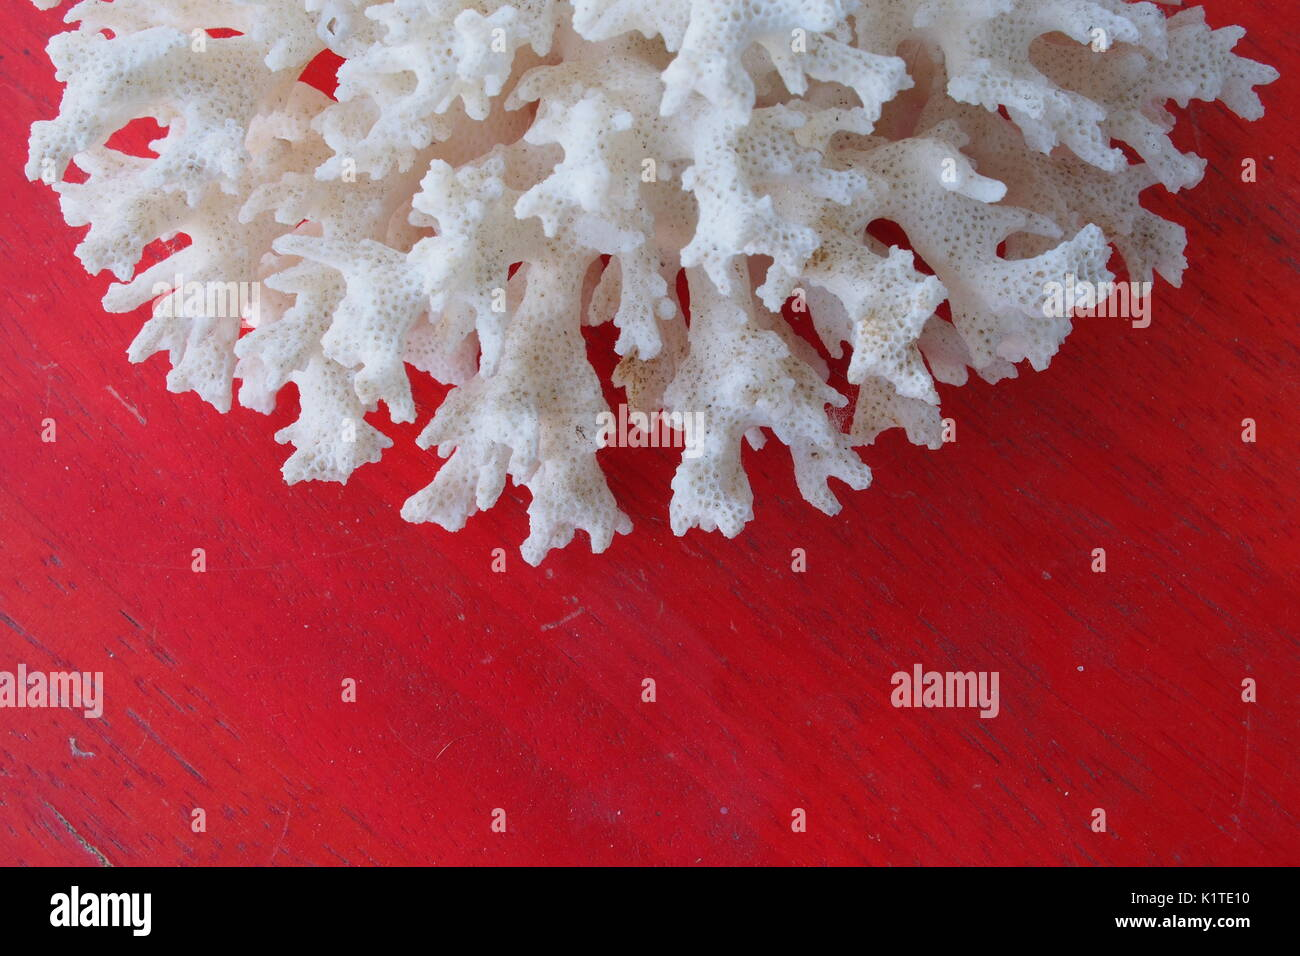 Bleached coral on a red table. - Stock Image